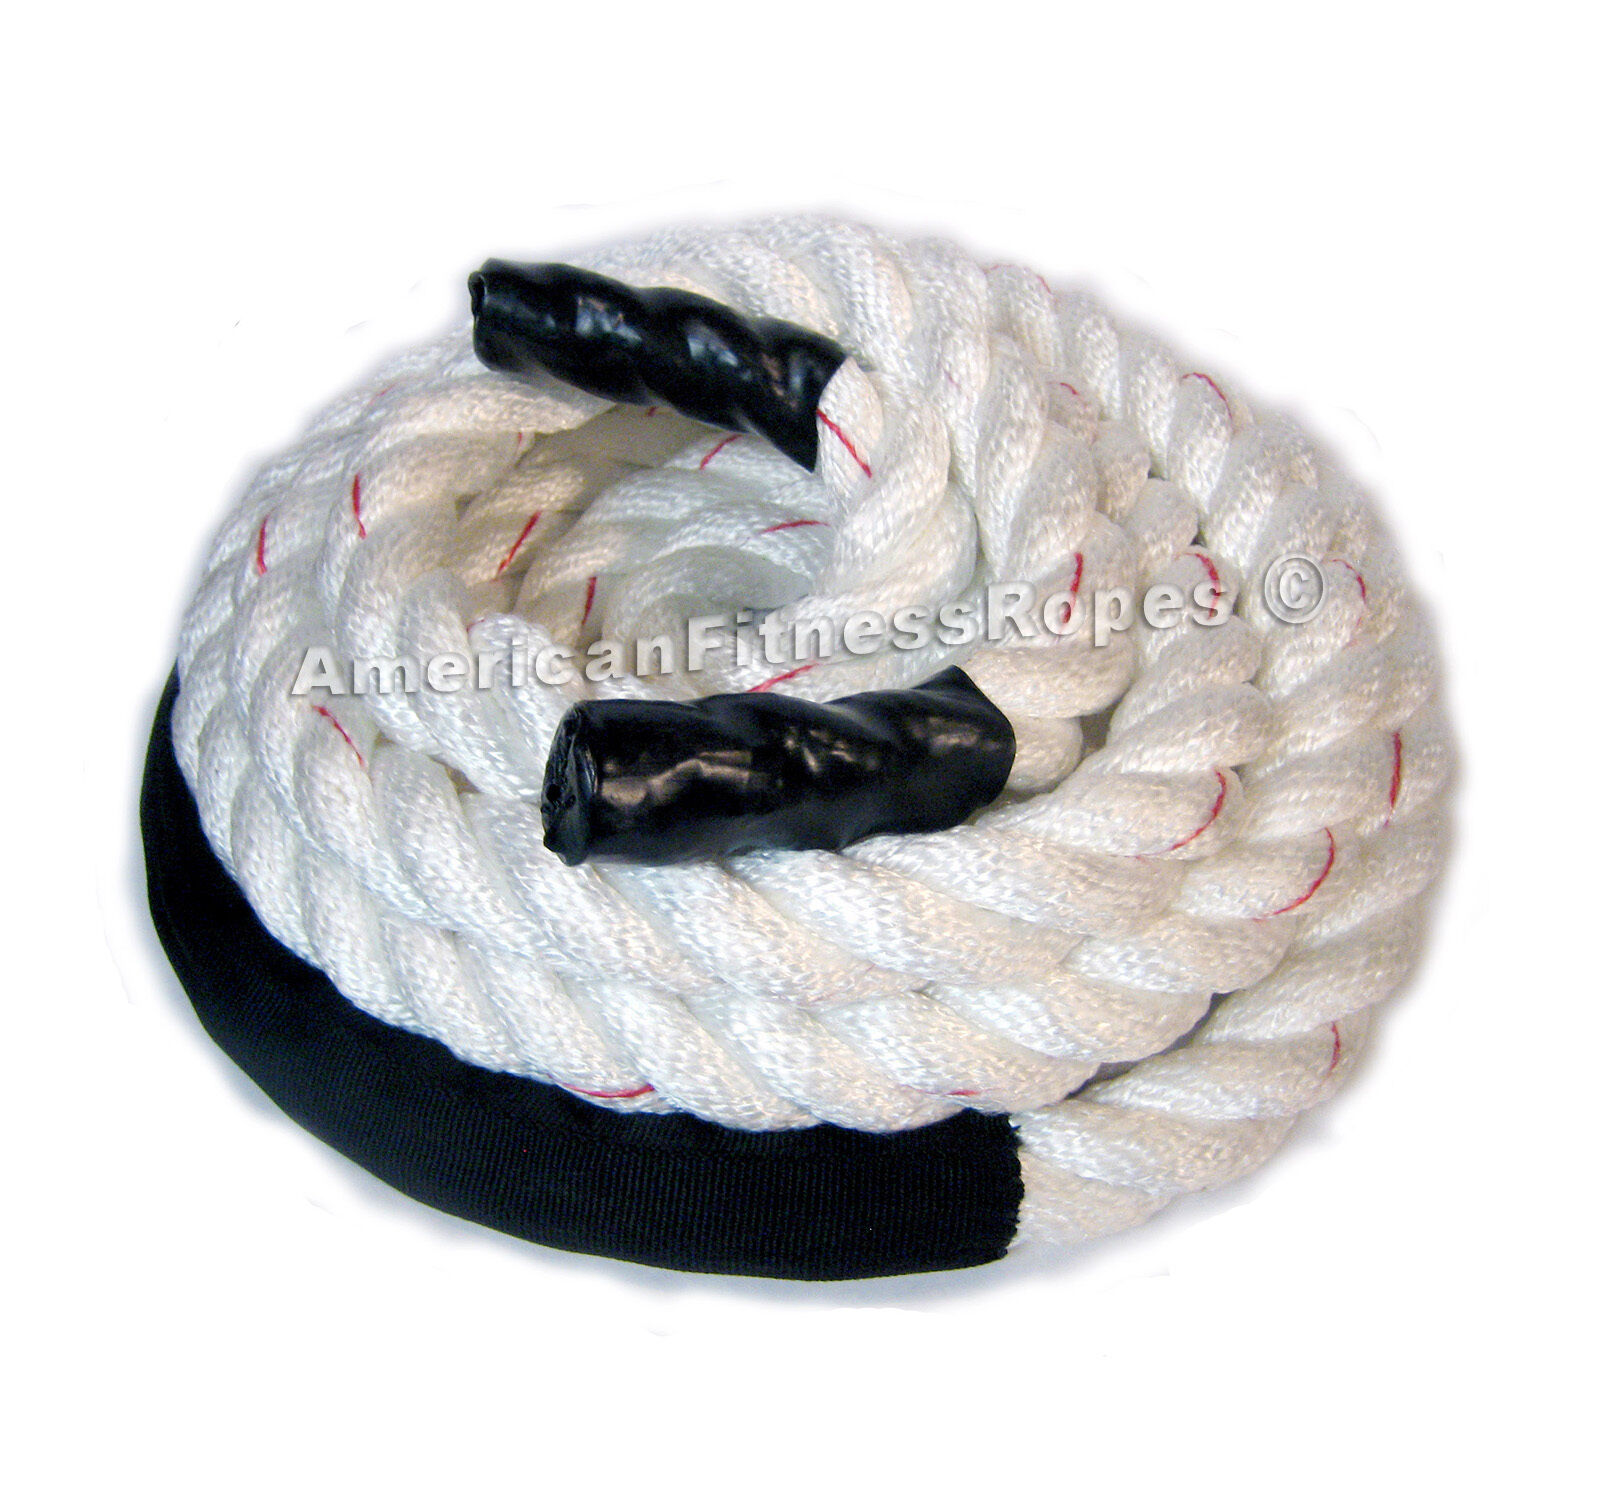 1-1 2  x 25' PolyDac Fitness, Exercise & Undulation Rope